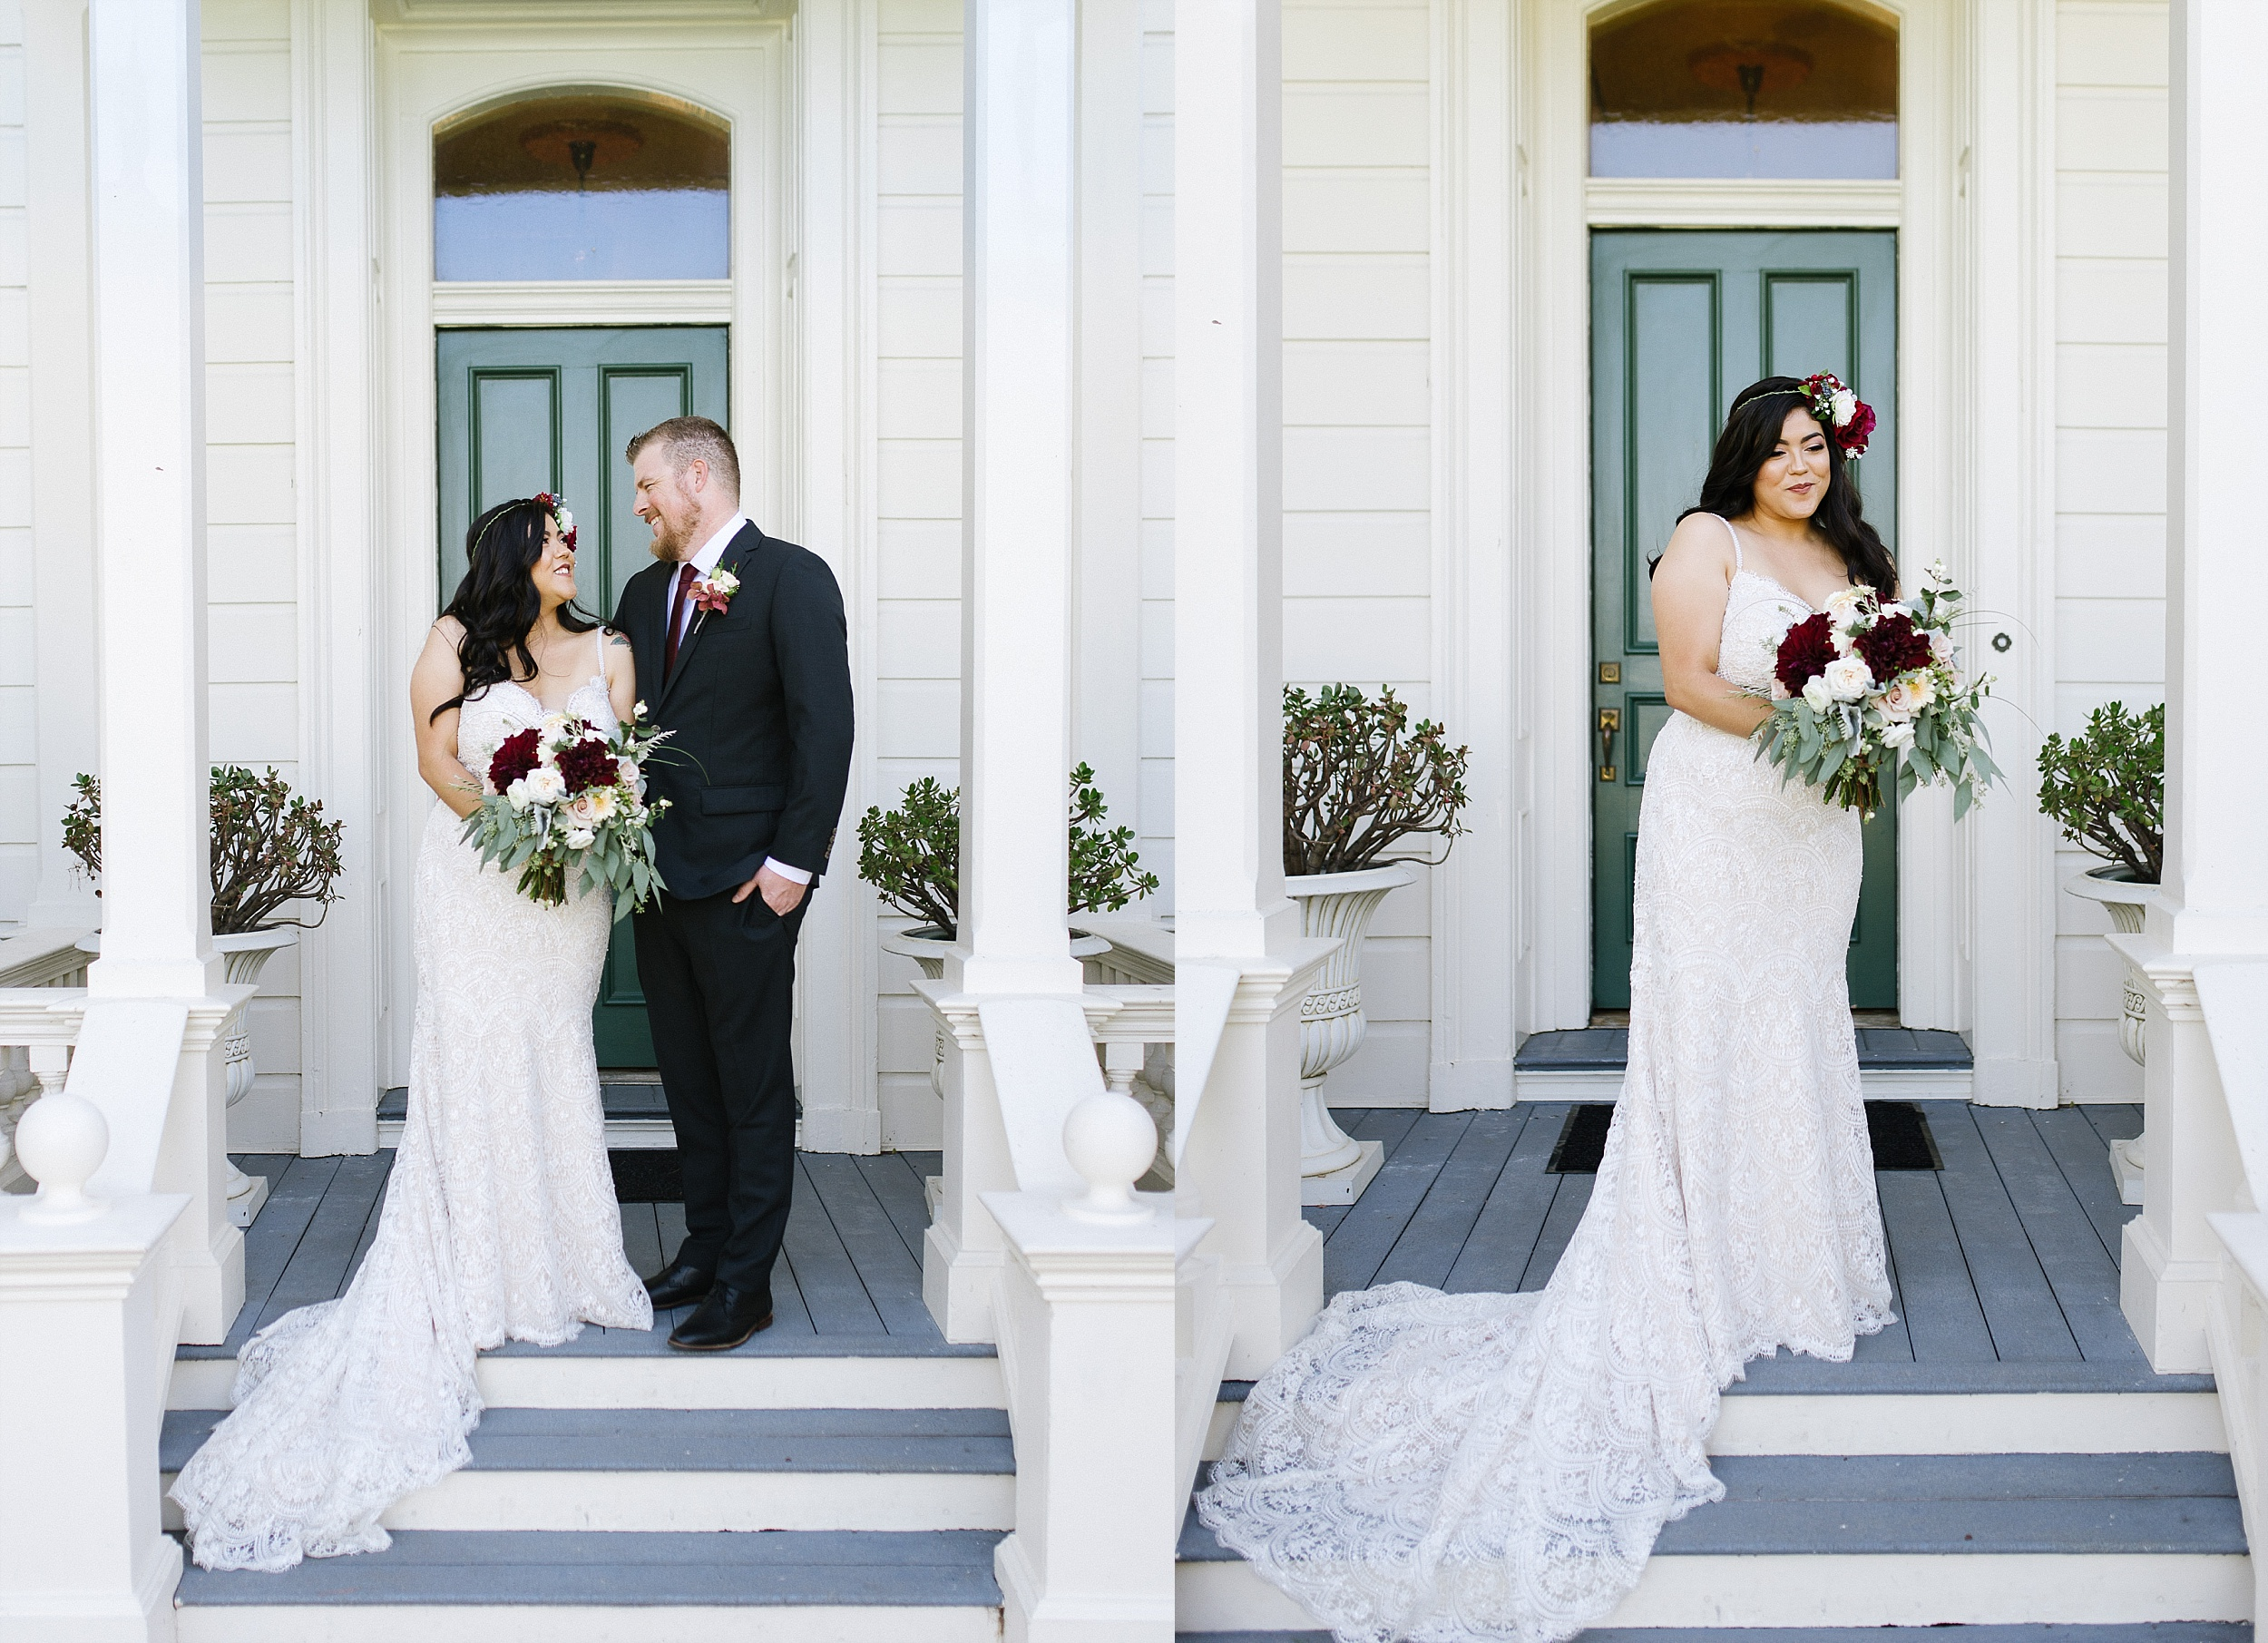 enissablake_Rengstorff_house_outdoor_wedding_cdp_0008.jpg